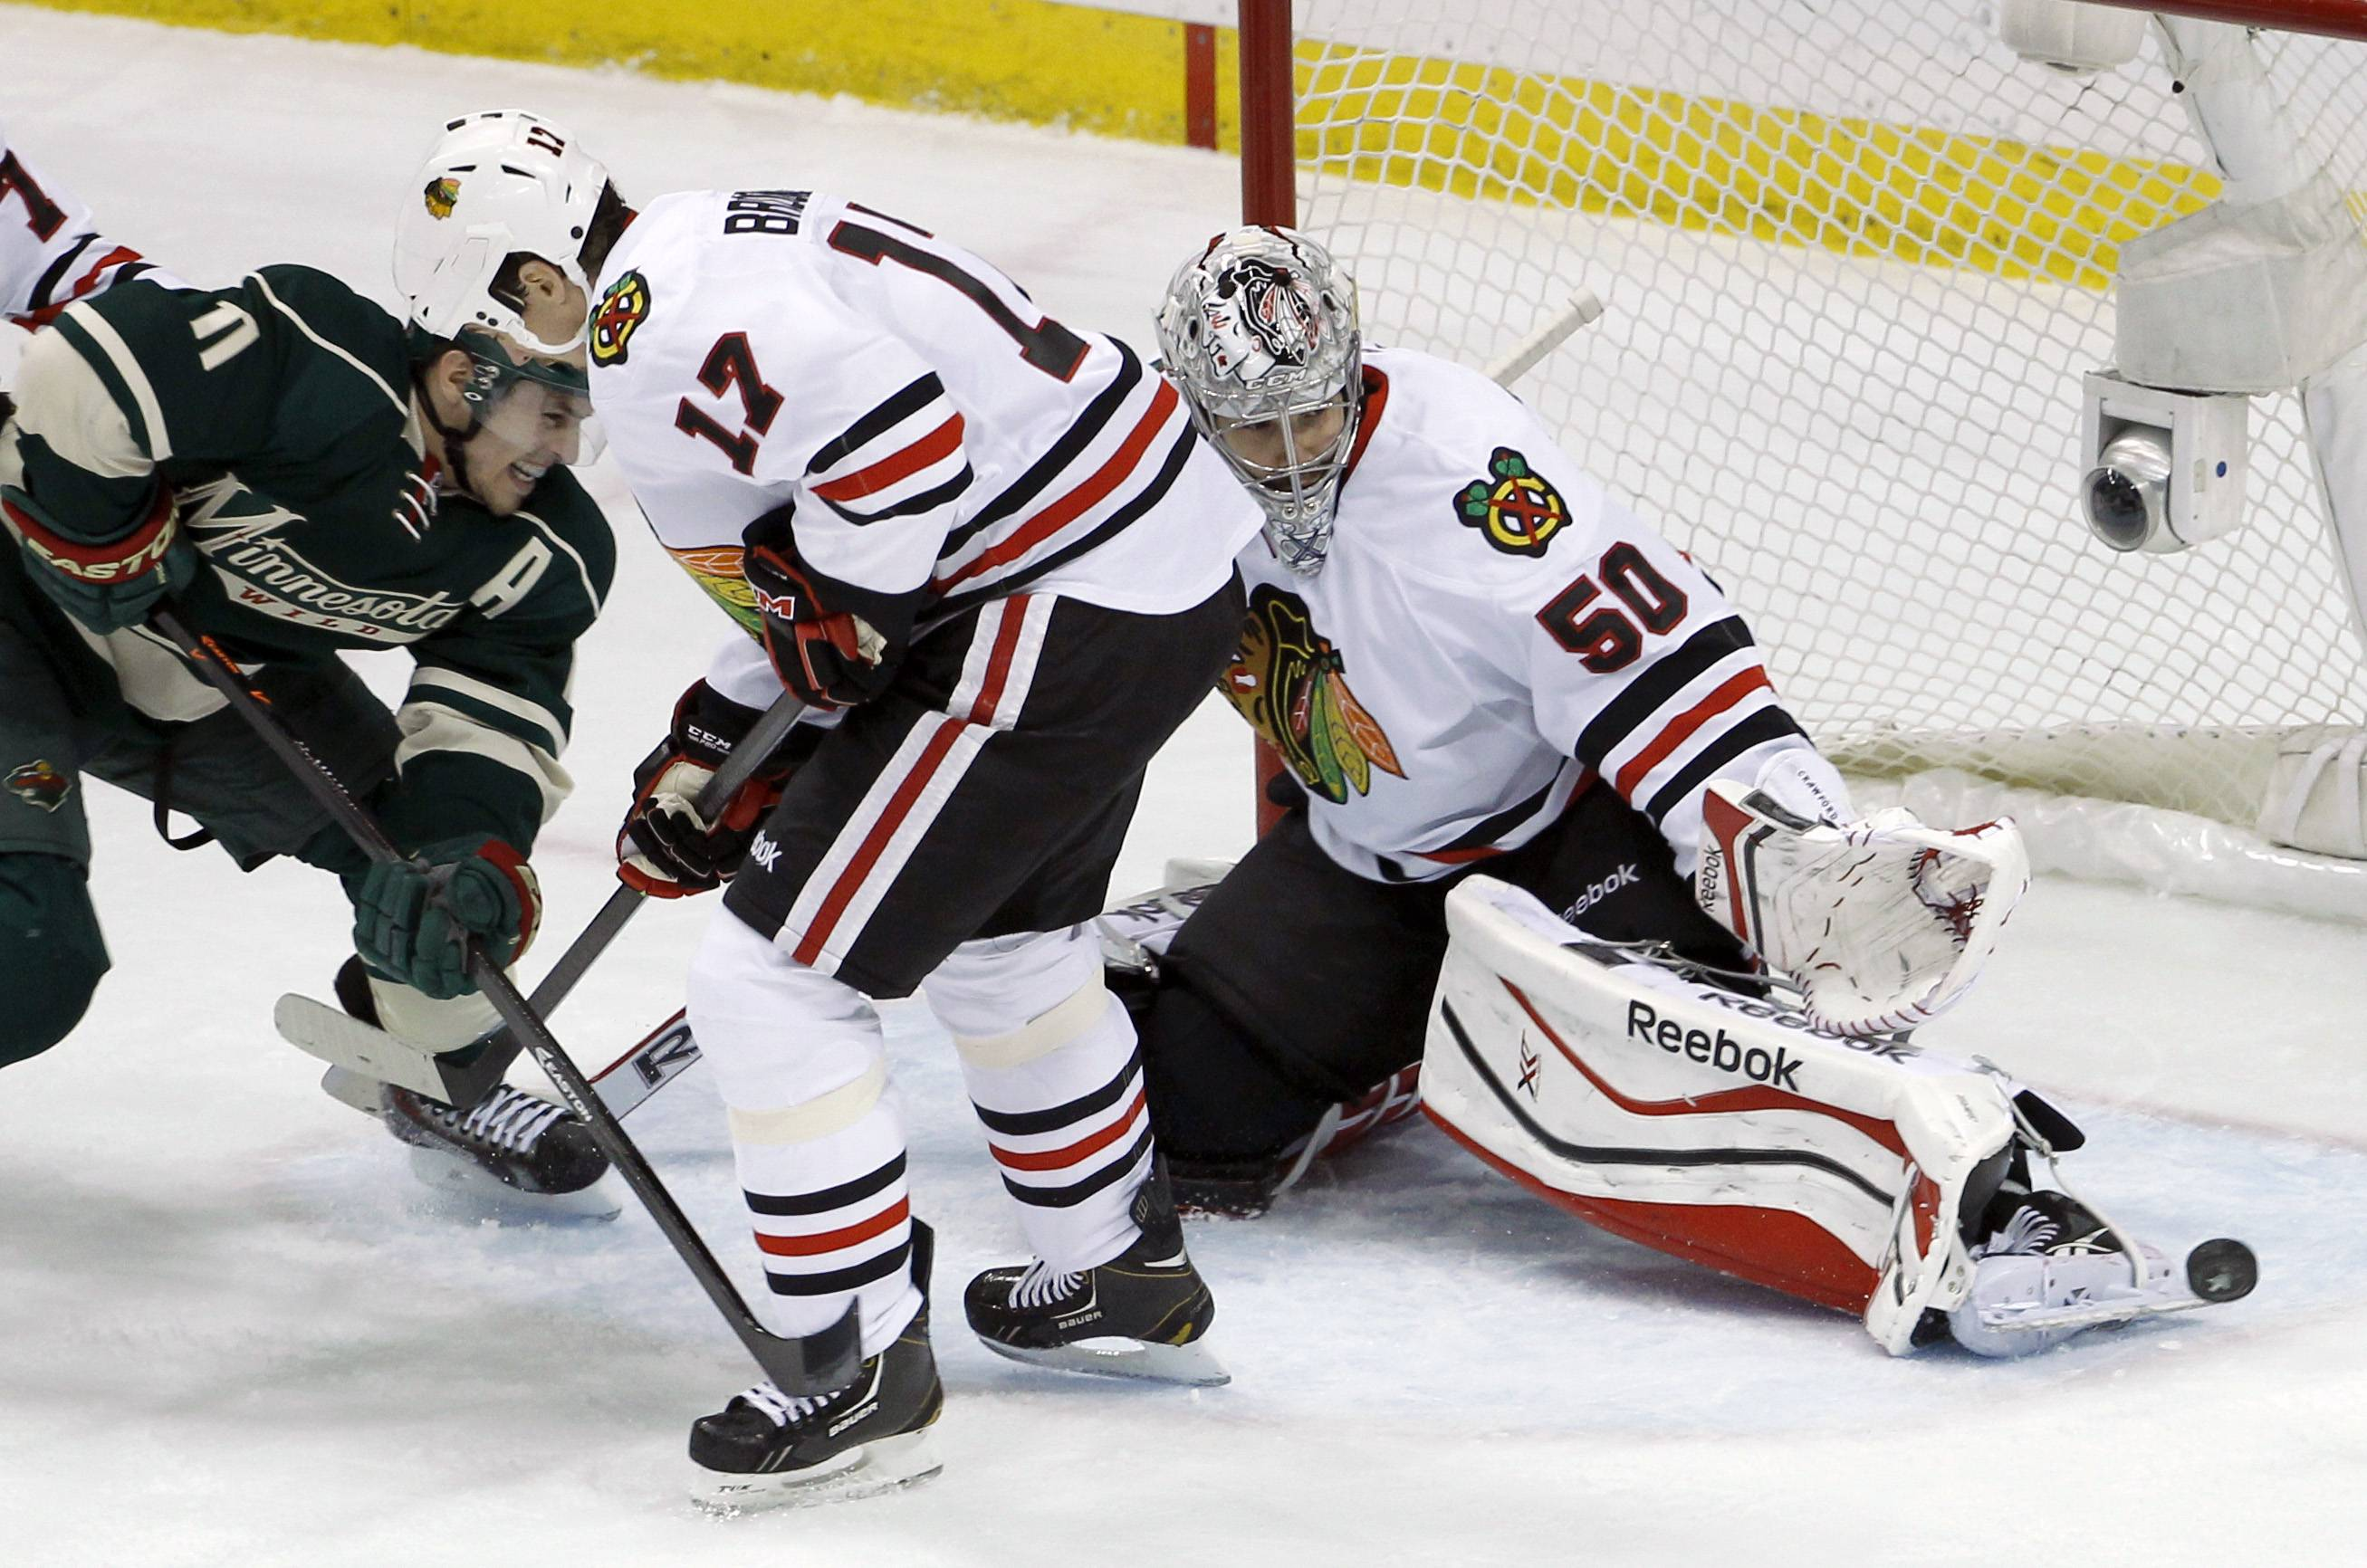 Chicago Blackhawks goalie Corey Crawford (50) deflects a shot in front of  Blackhawks defenseman Sheldon Brookbank (17) and Minnesota Wild left wing Zach Parise (11) during the first period.